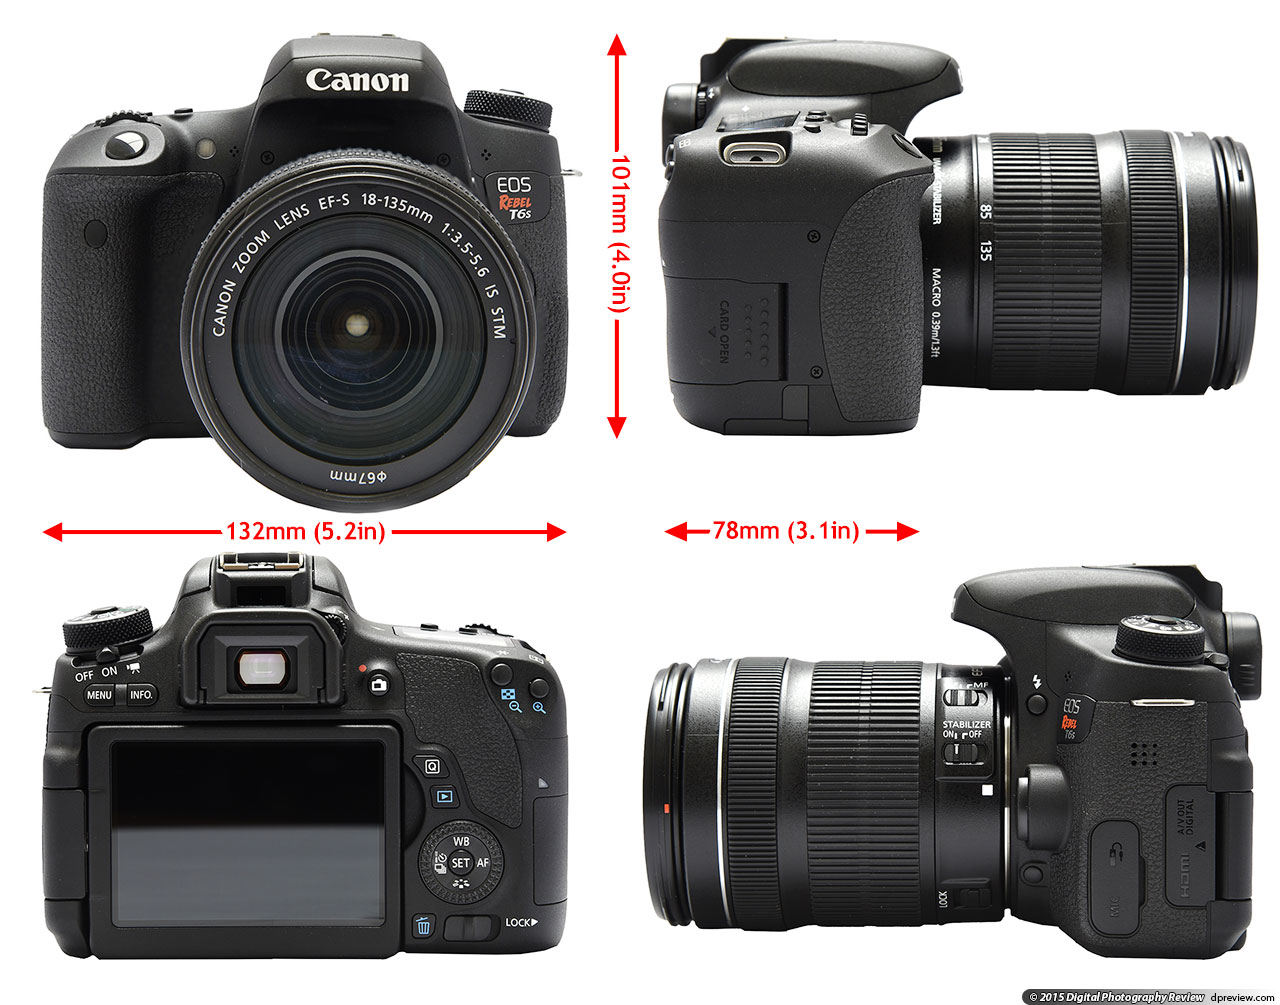 canon eos rebel t6s t6i 760d 750d first impressions review digital photography review. Black Bedroom Furniture Sets. Home Design Ideas